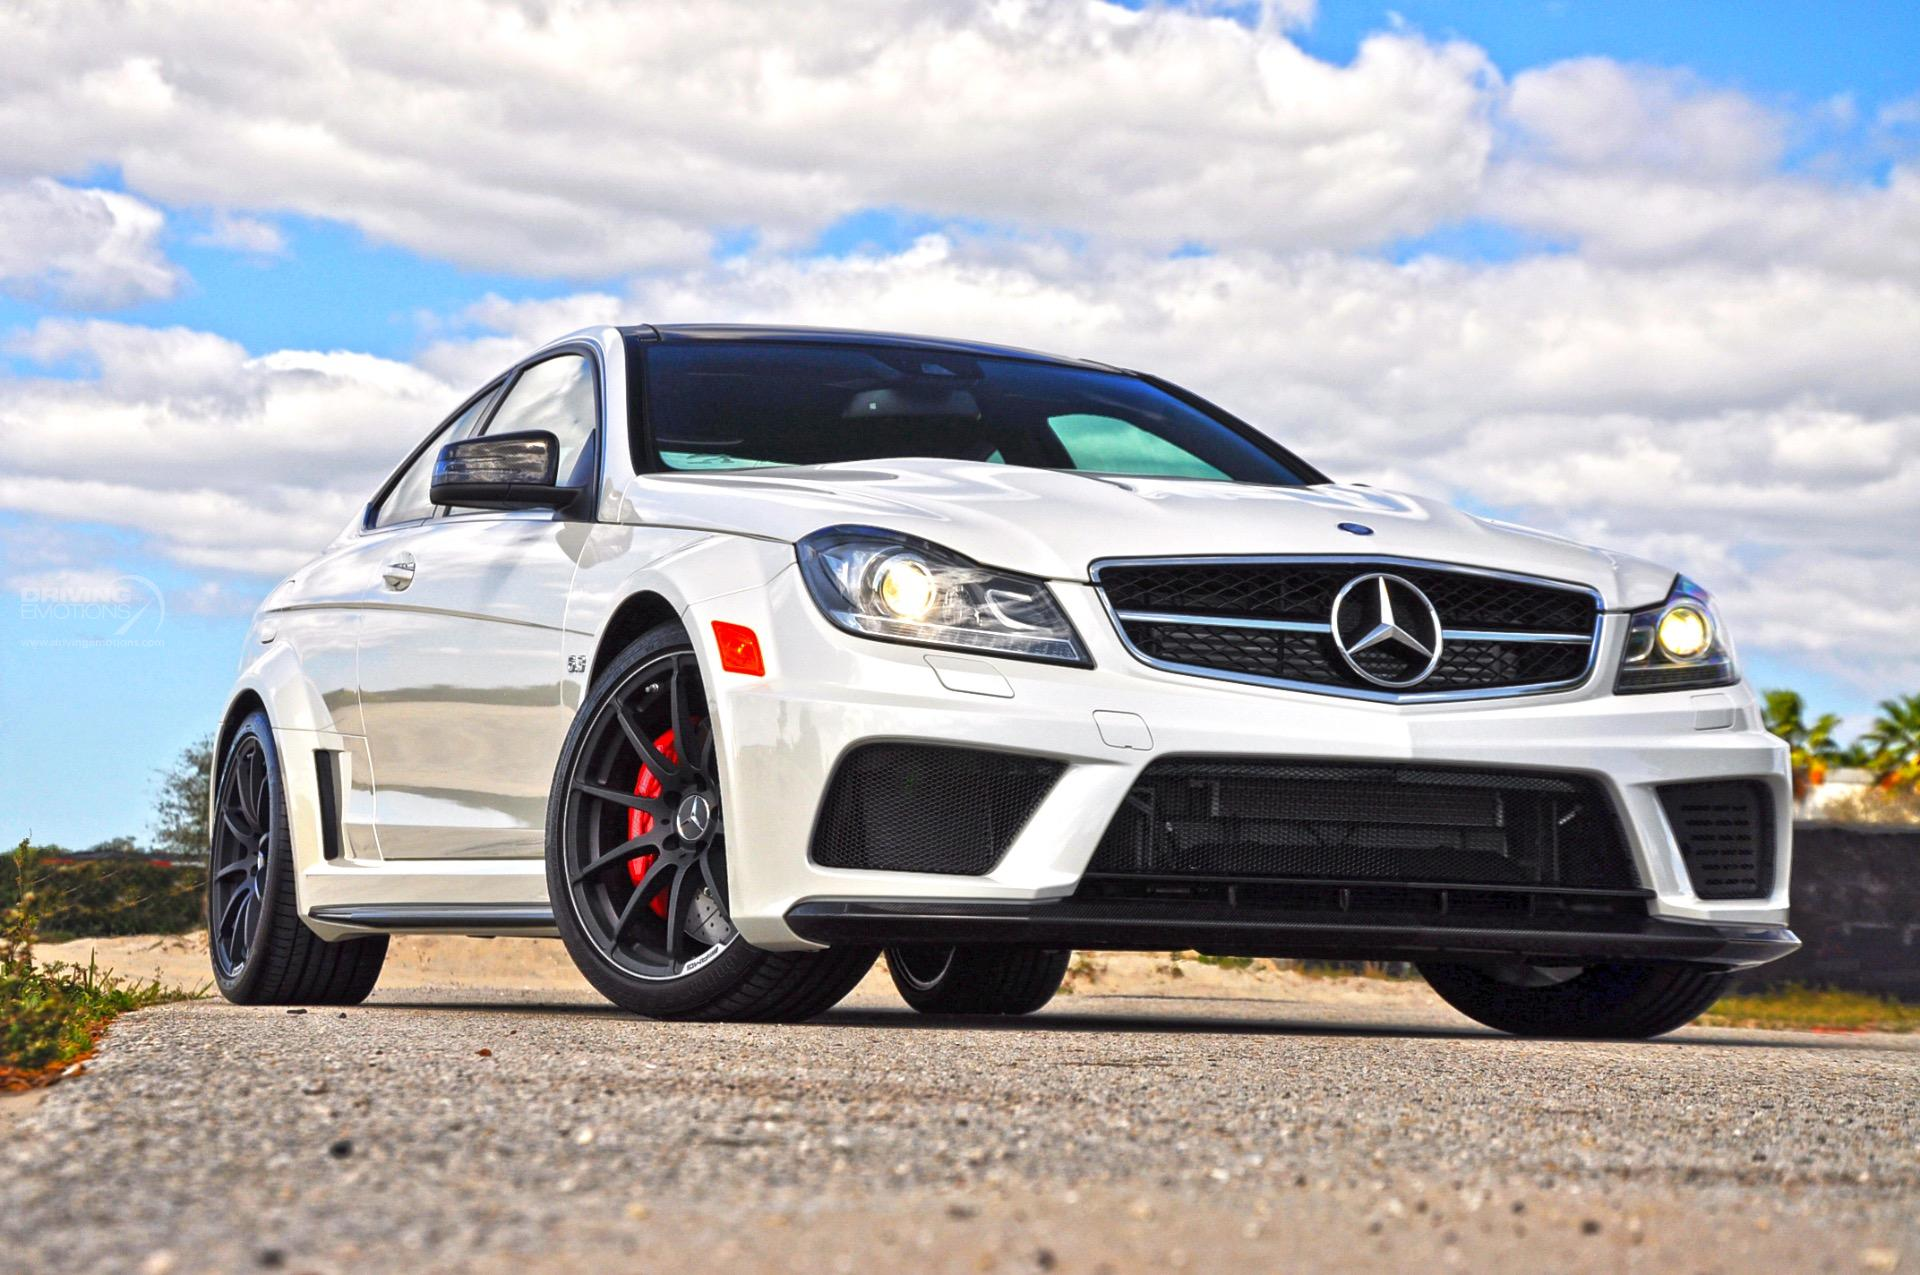 Used Car True Car >> 2013 Mercedes-Benz C63 AMG Black Series C63 AMG Black Series Stock # 5862 for sale near Lake ...